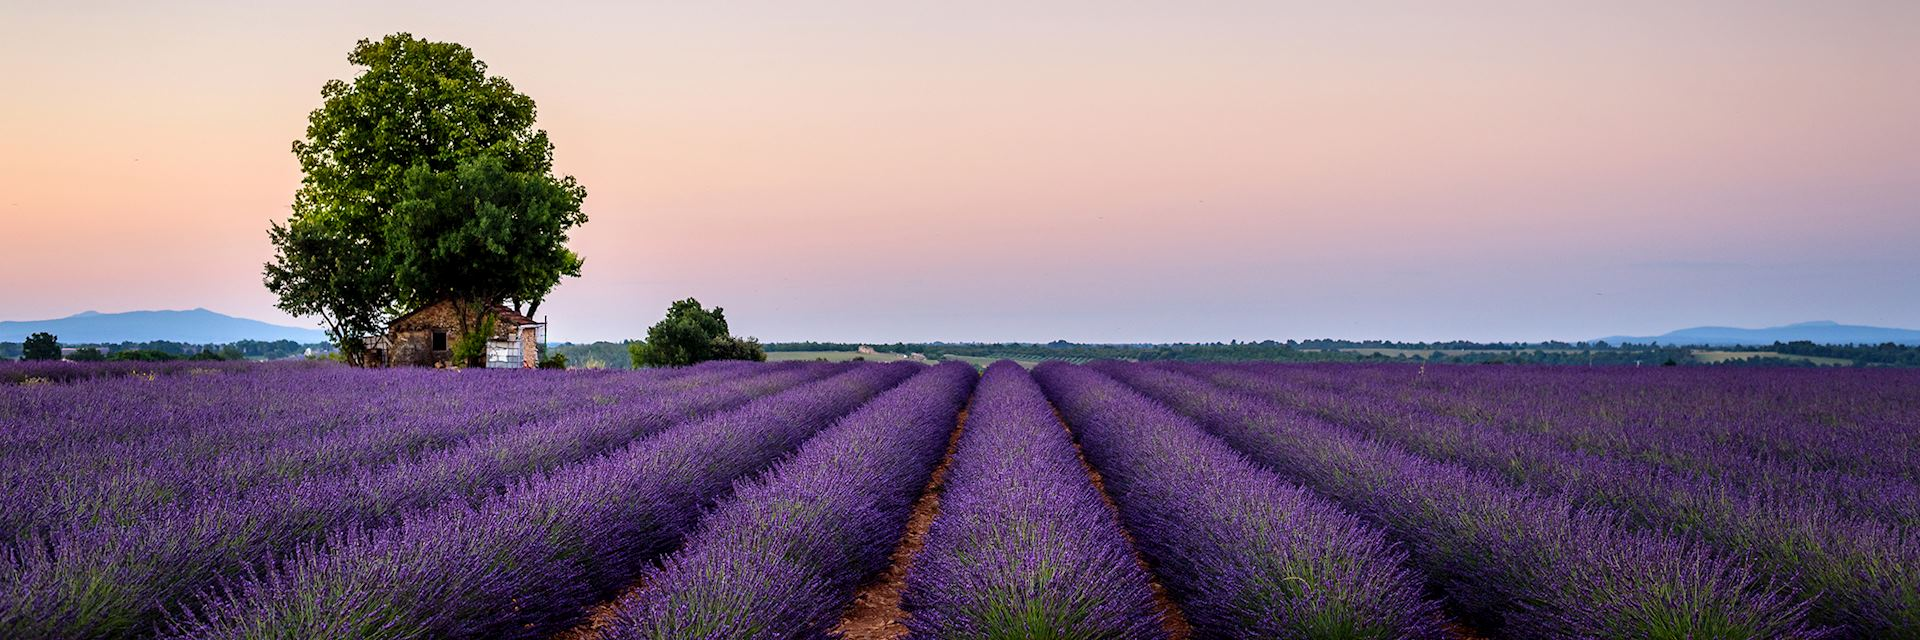 House in field of lavendar, Provence